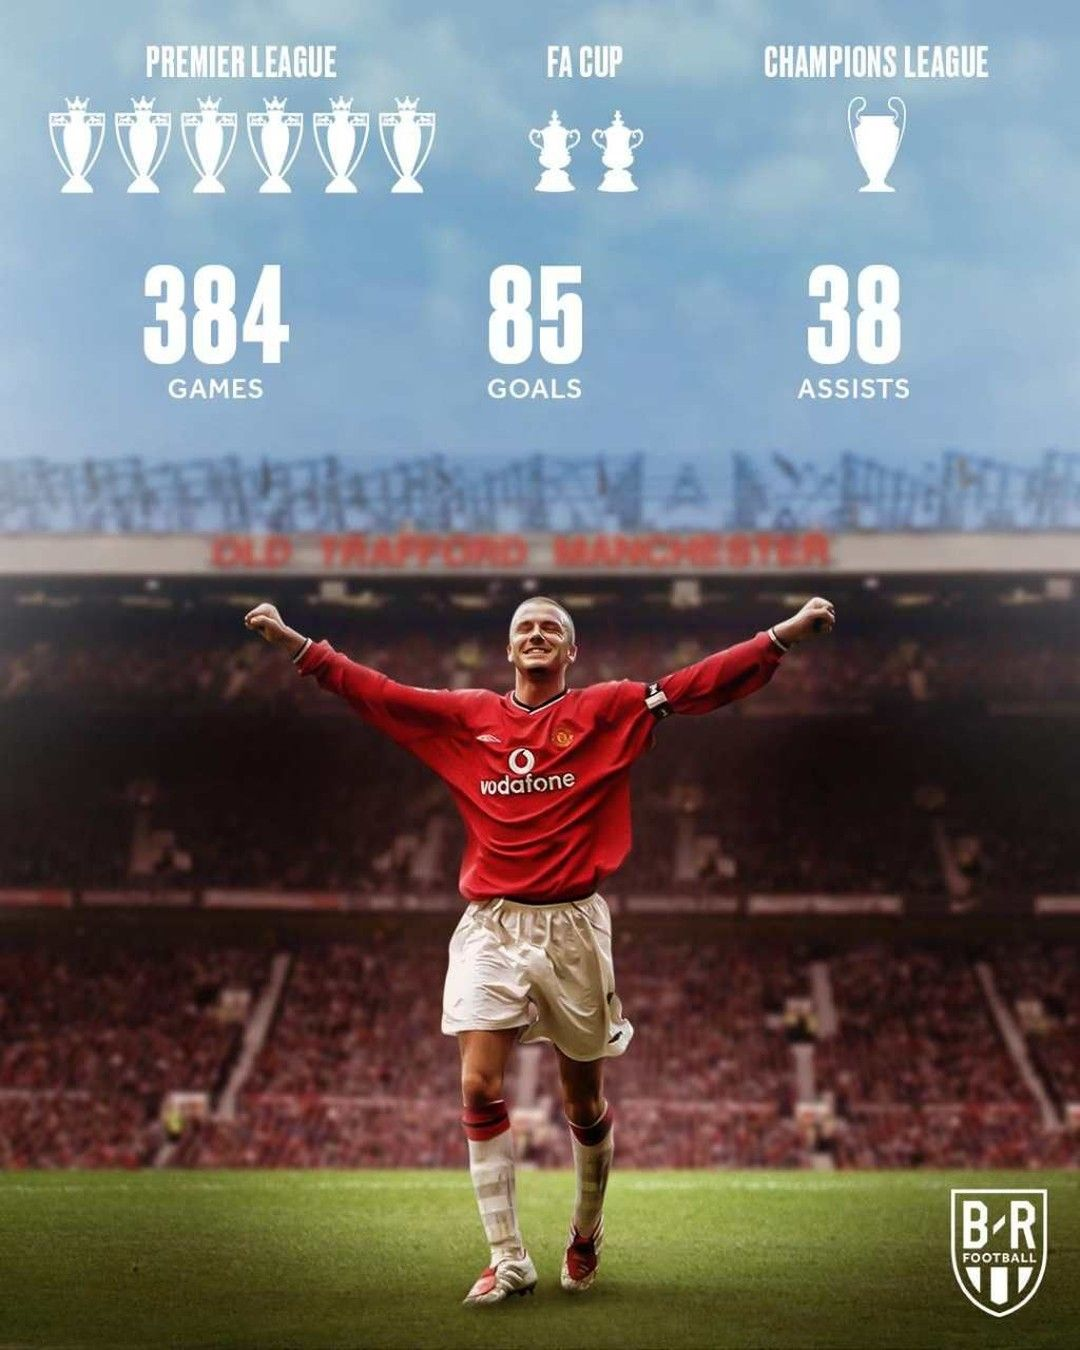 On This Day In 2003 David Beckham Played His Last Game For Manchester United And Won The Lot Manutdxyz Fernades In 2020 Manchester United Man United Manchester